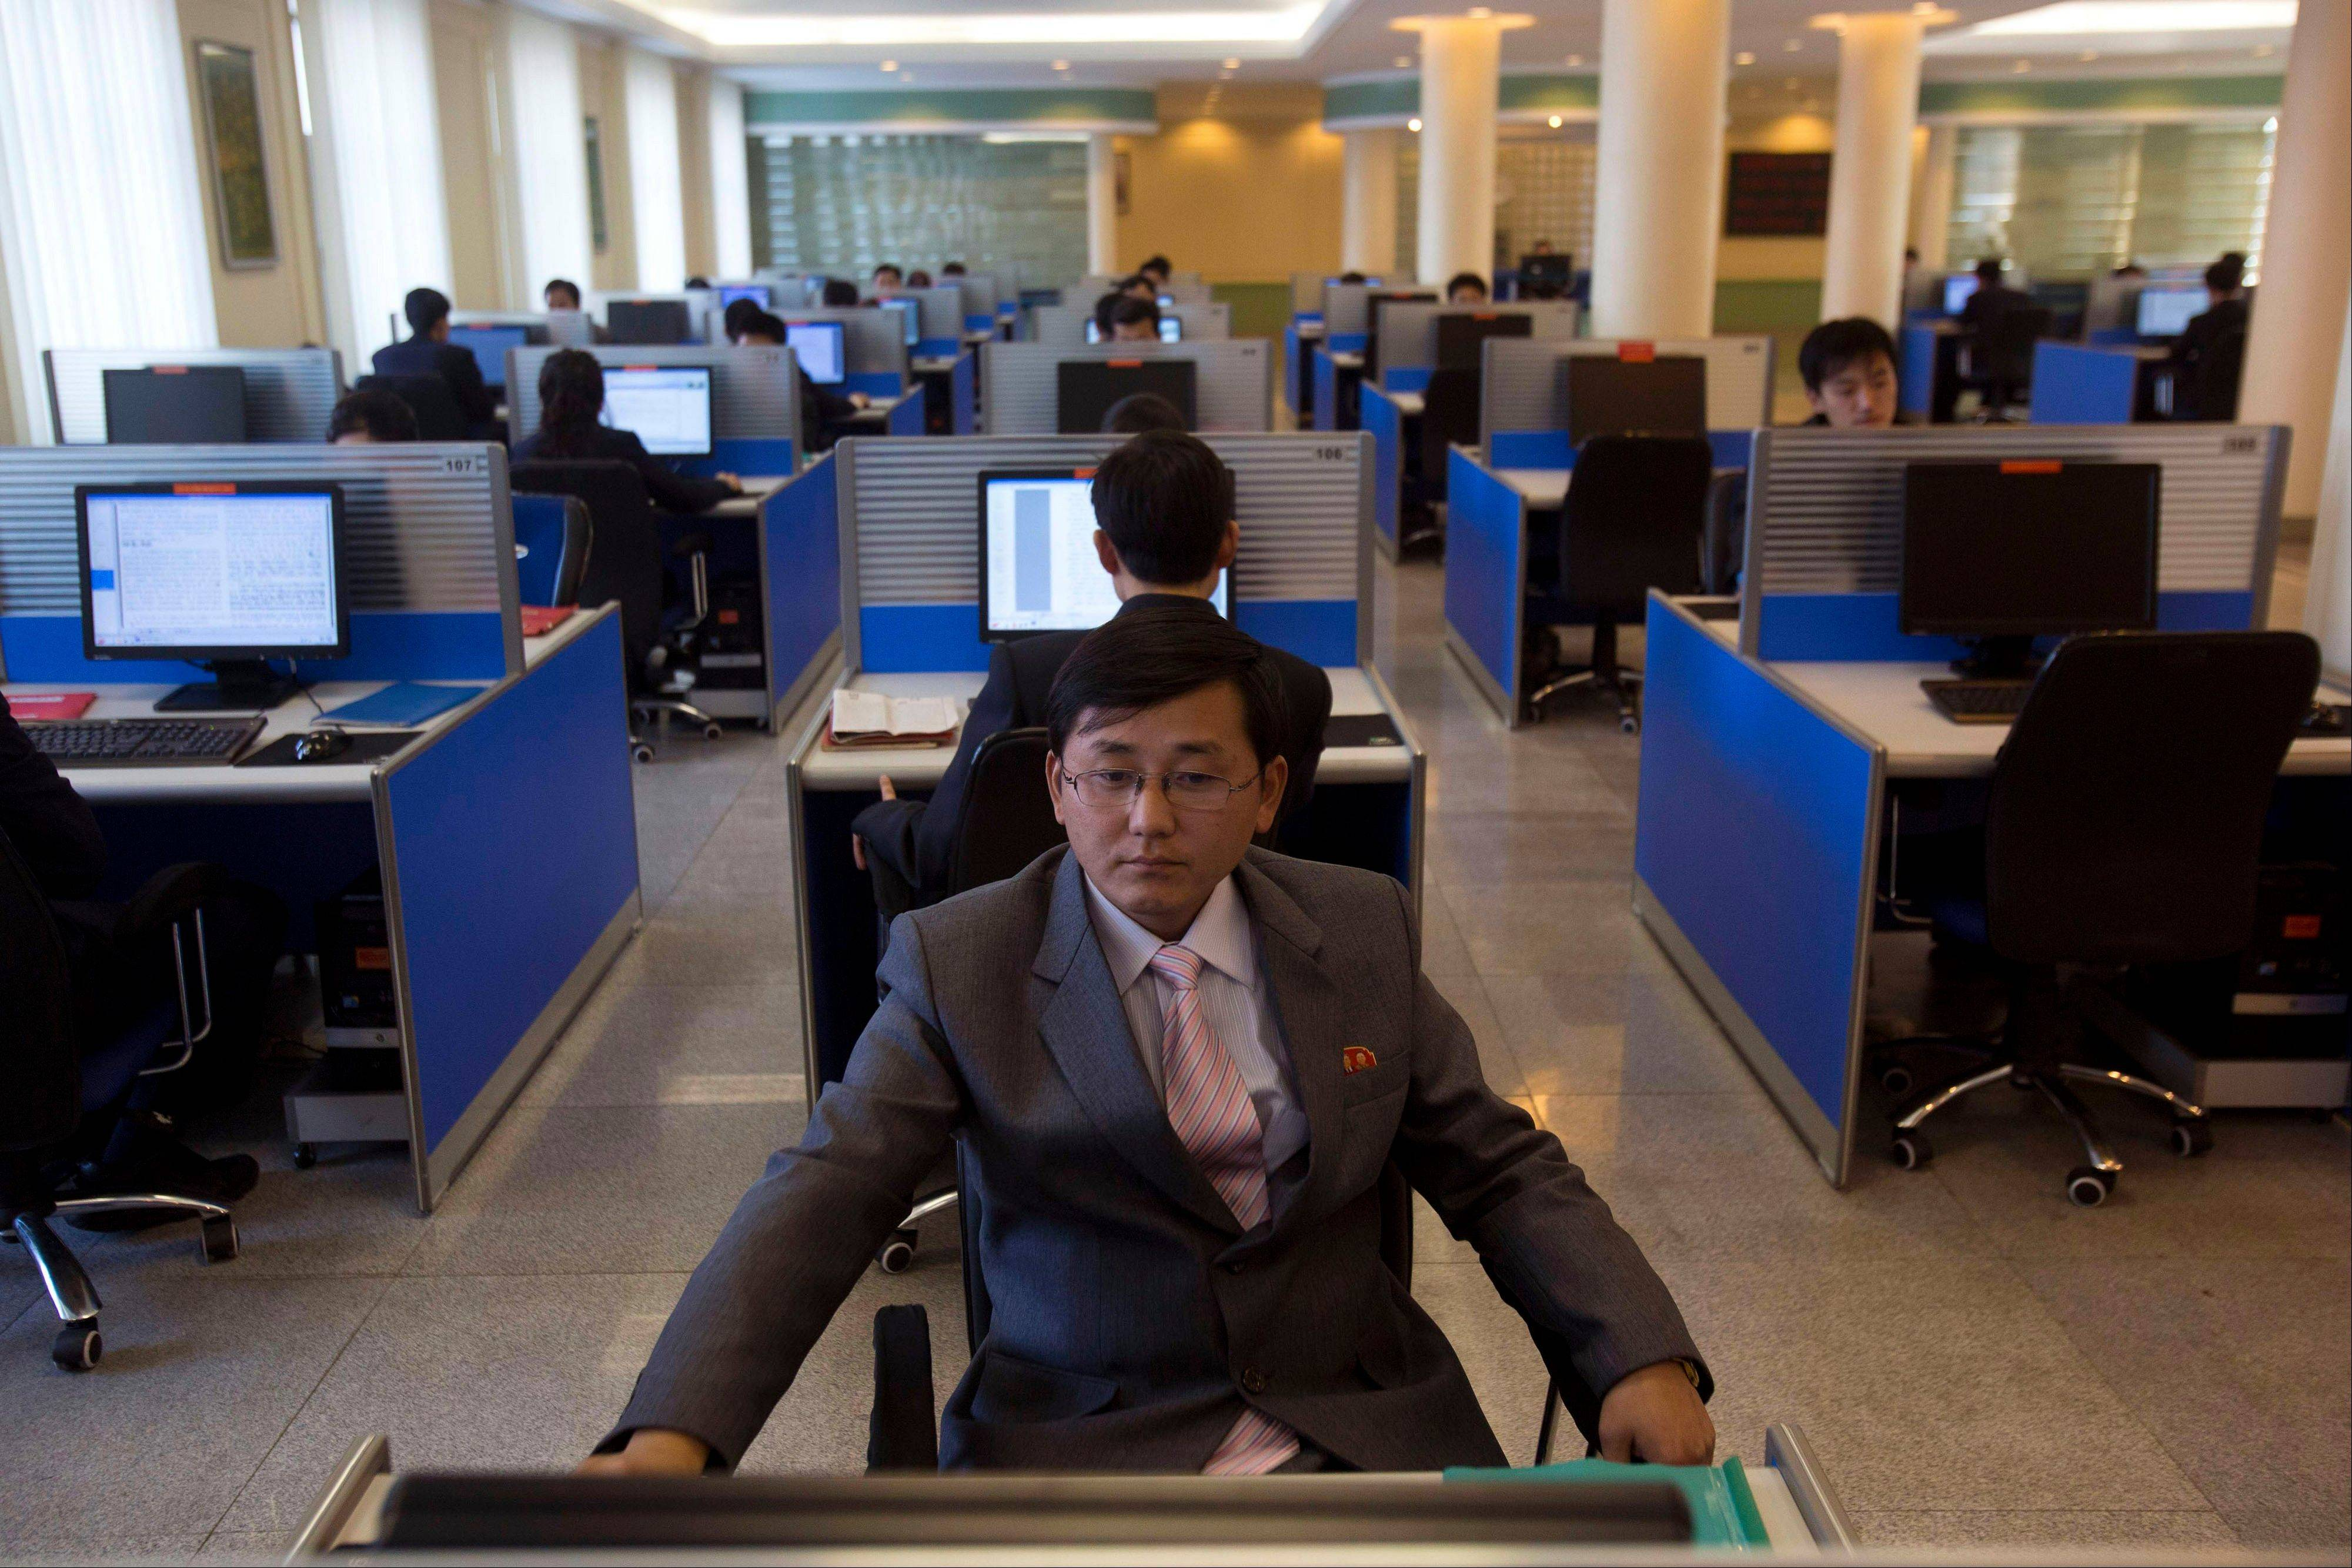 A North Korean student surfs the Internet at a computer terminal inside a computer lab at Kim Il Sung University in Pyongyang, North Korea during a tour by Executive Chairman of Google Eric Schmidt. North Korea on Friday blamed South Korea and the United States for cyberattacks that temporarily shut down websites this week at a time of elevated tensions over the North's nuclear ambitions. Experts, however, indicated it could take months to determine what happened and one analyst suggested more likely culprits: hackers in China.